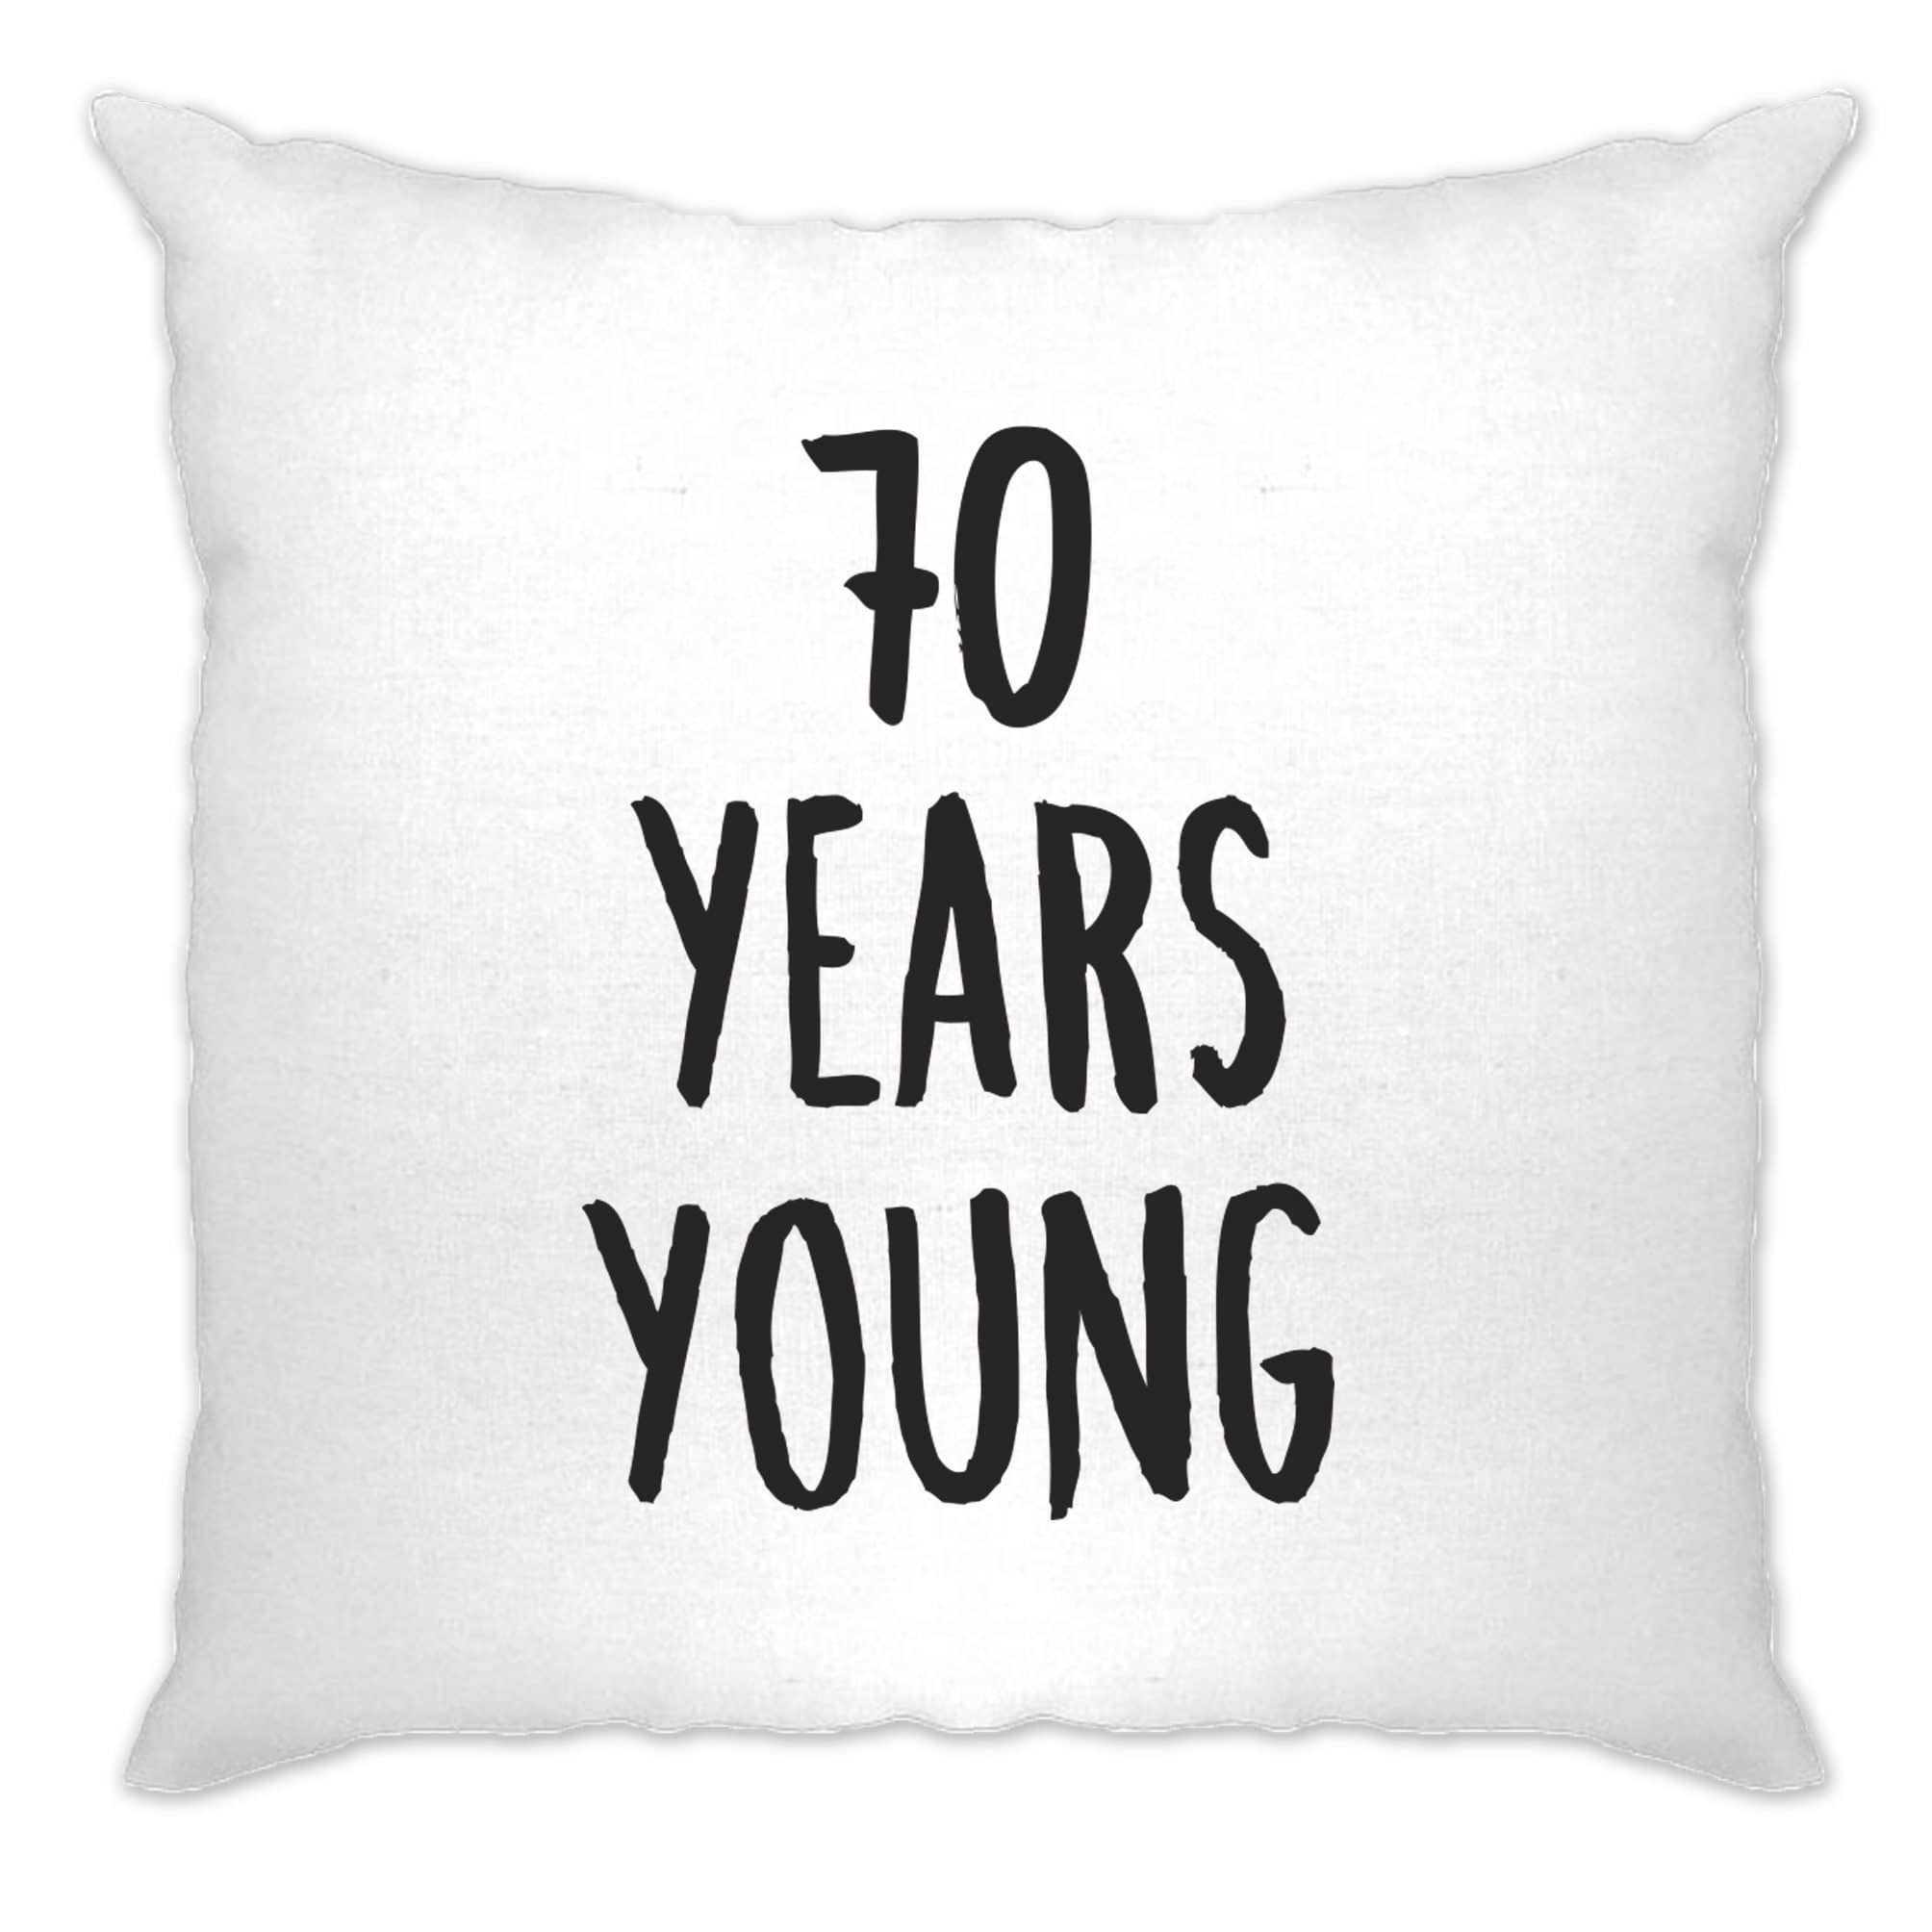 70th Birthday Joke Cushion Cover 70 Years Young Novelty Text